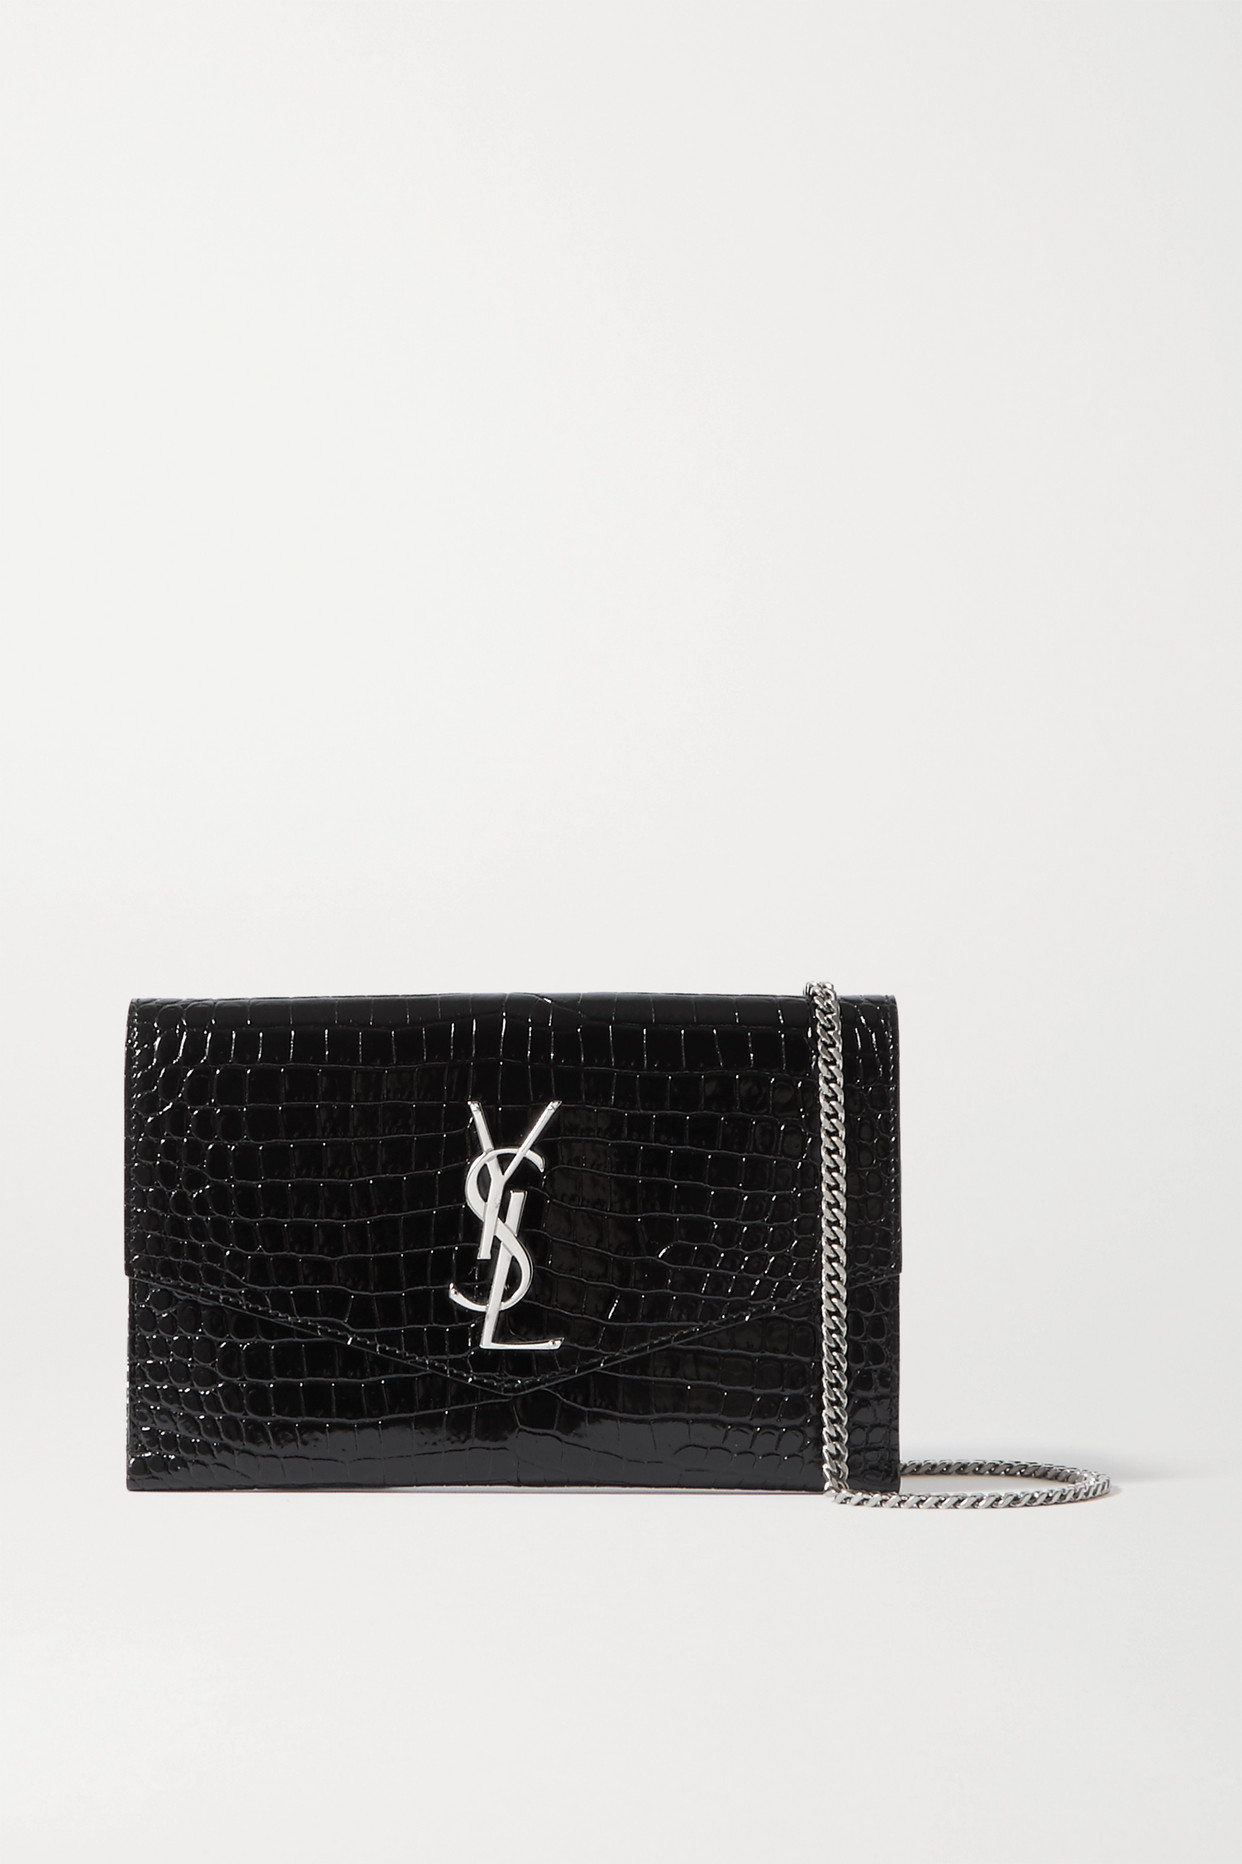 SAINT LAURENT - Uptown Croc-effect Leather Shoulder Bag - Black - one size